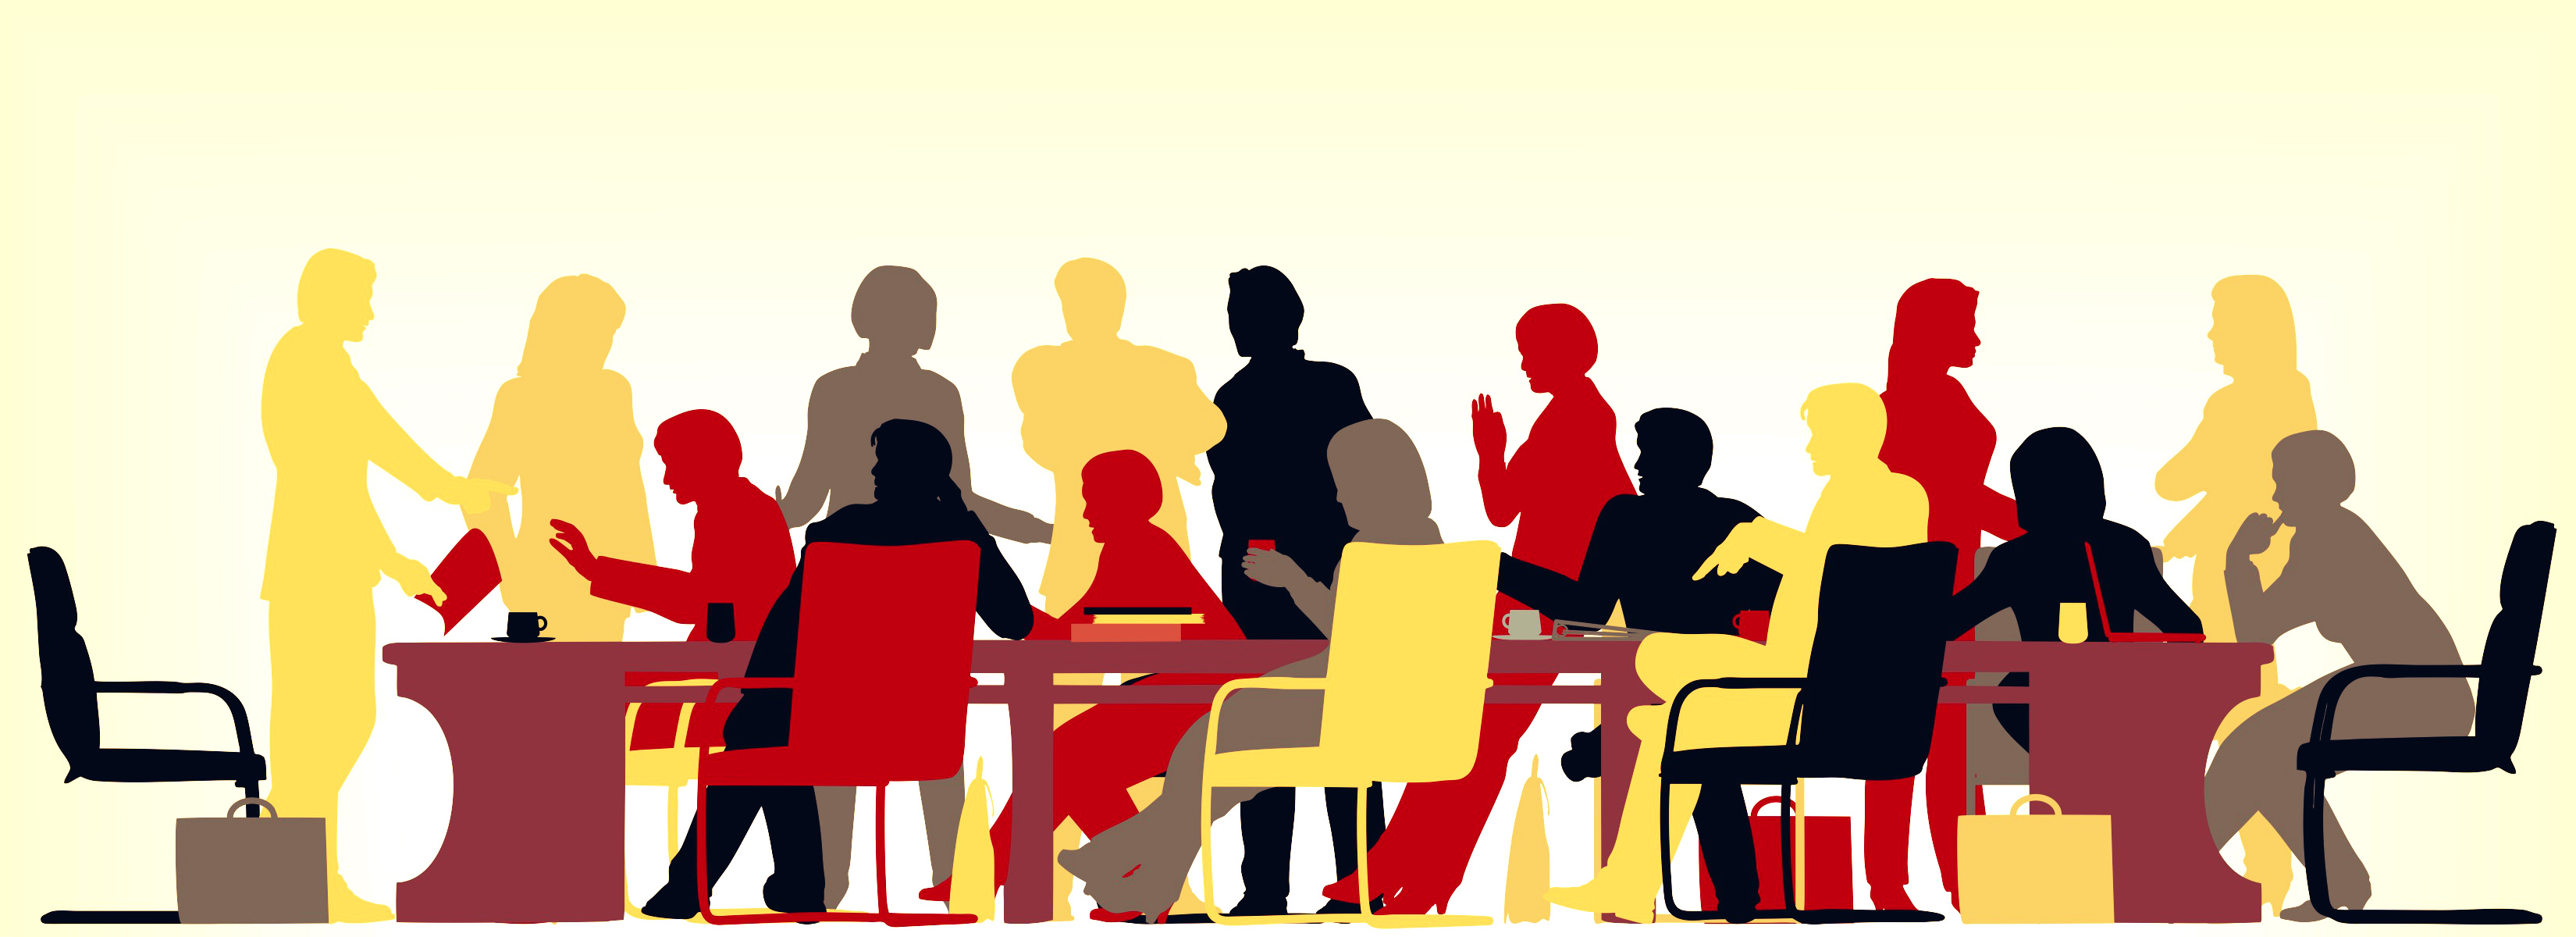 3300x1200 Meetings Clipart